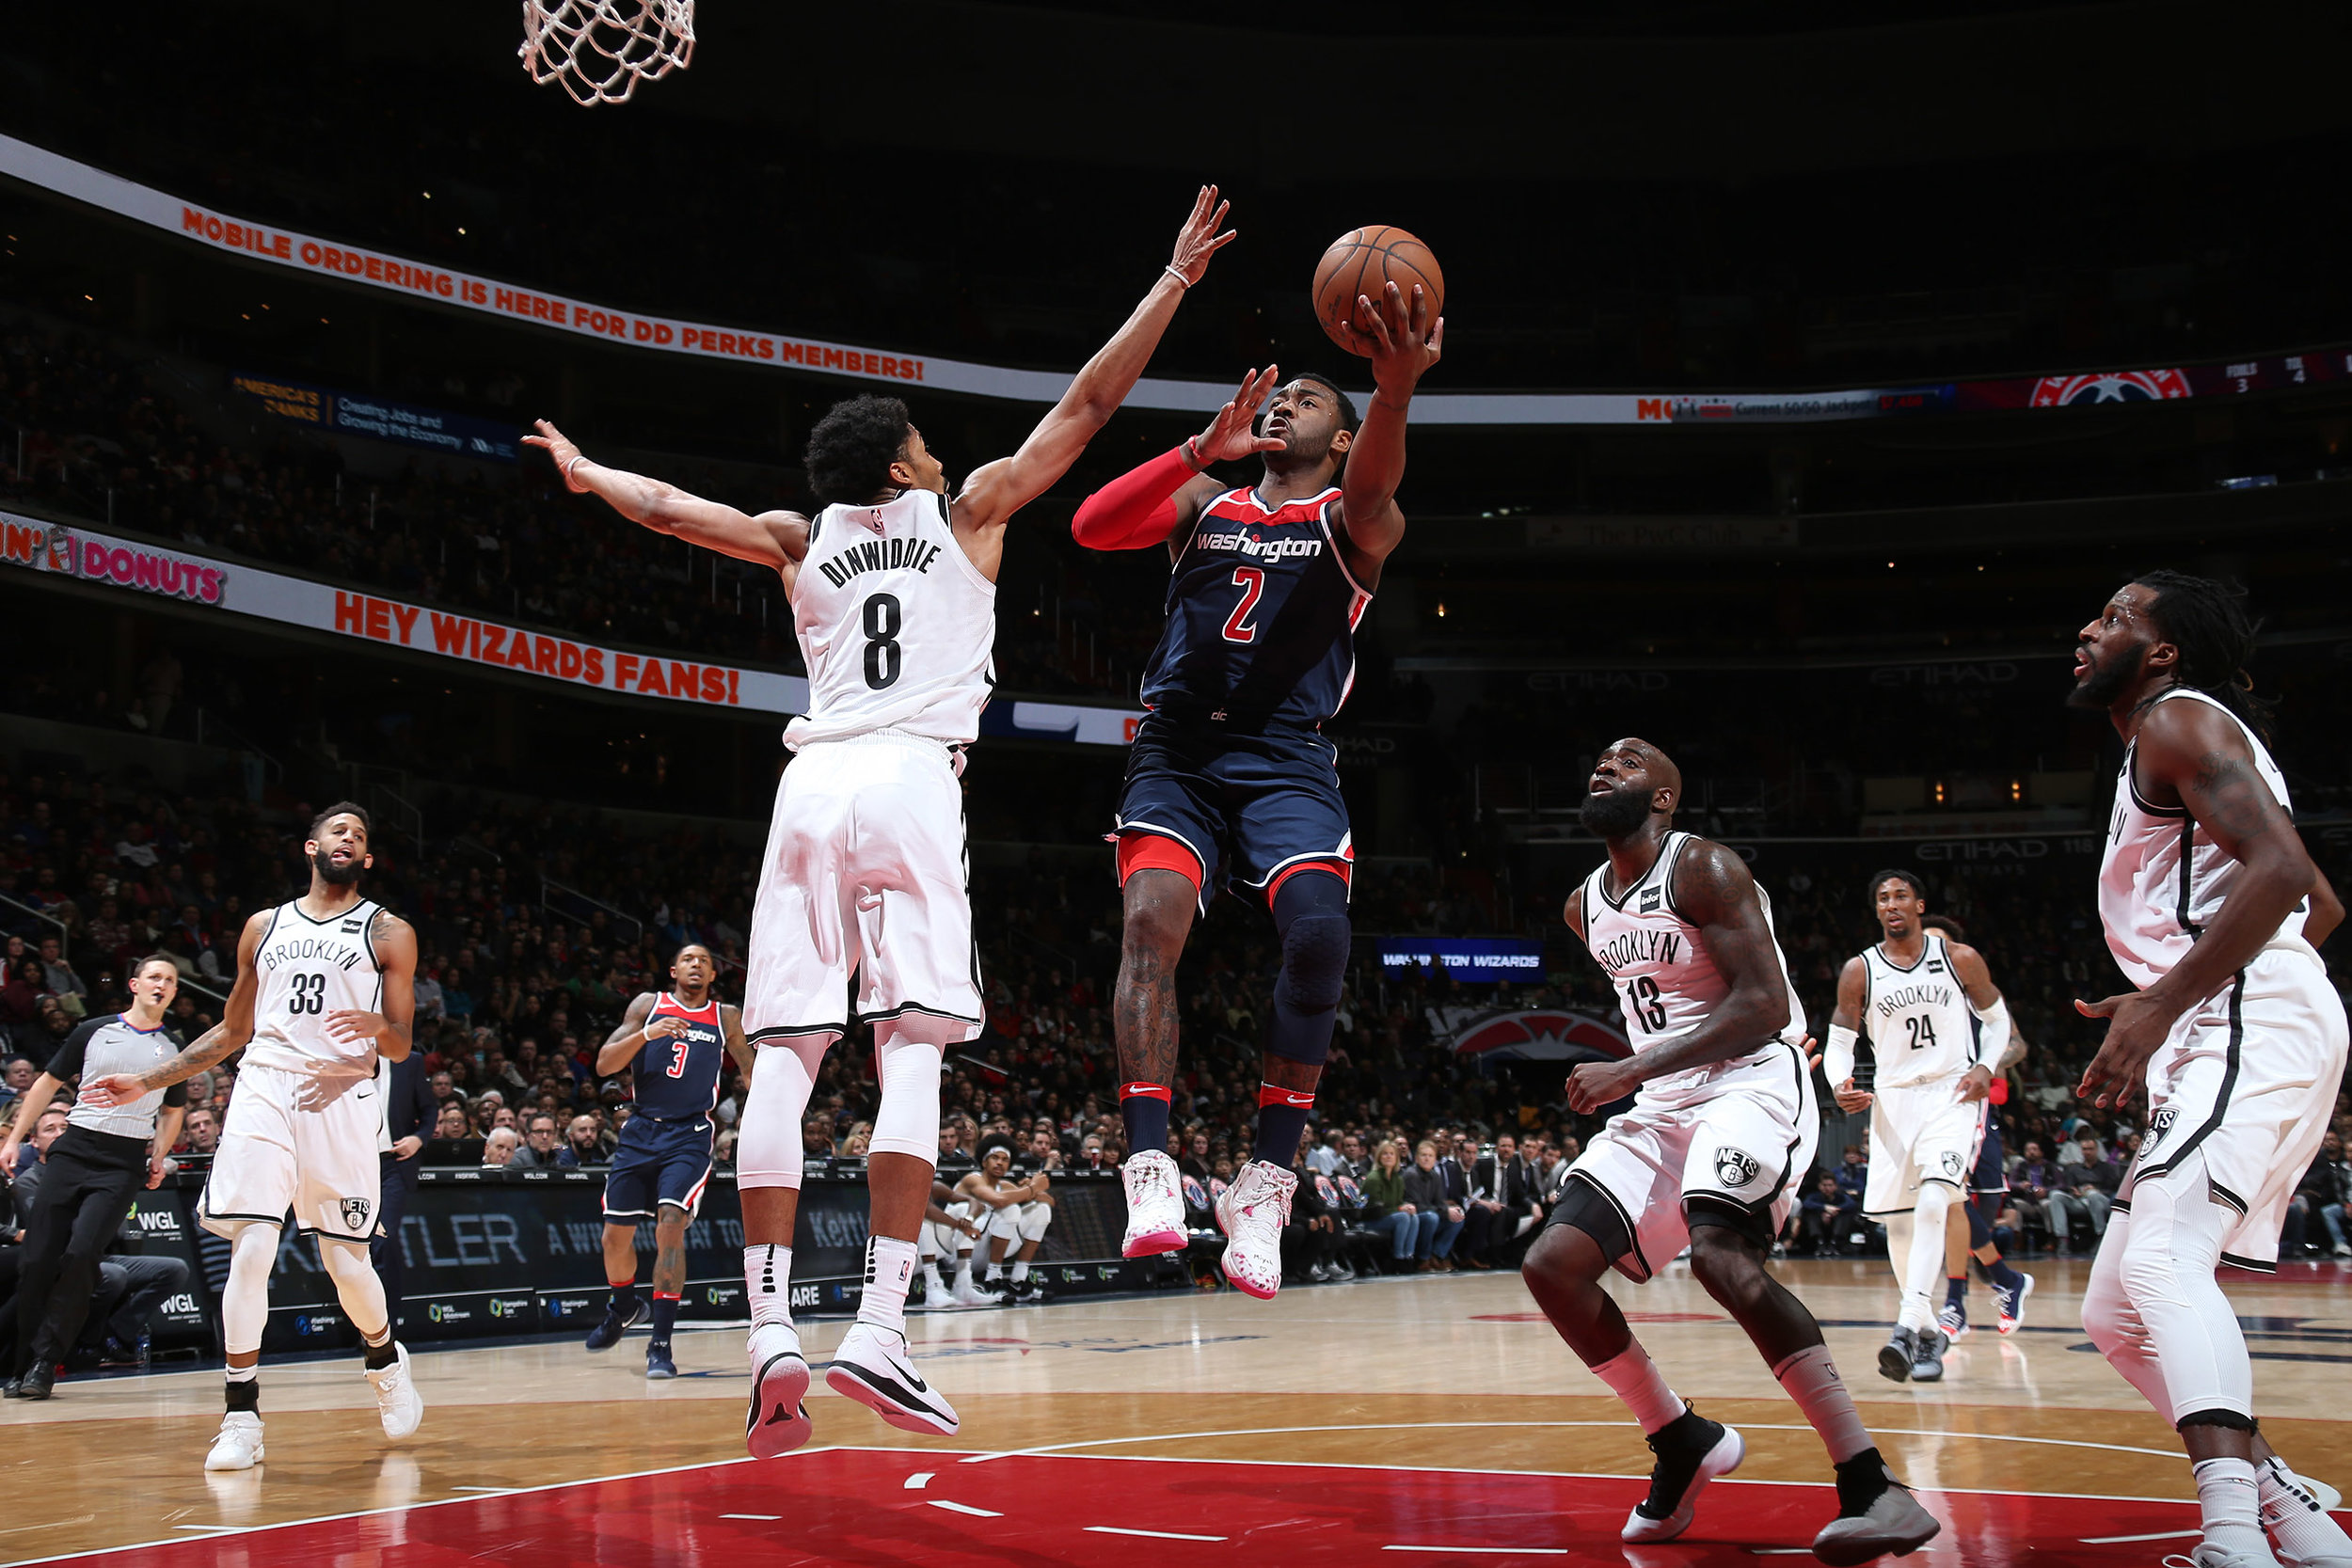 Brooklyn-Nets-Washington-Wizards-20180113-14.JPG